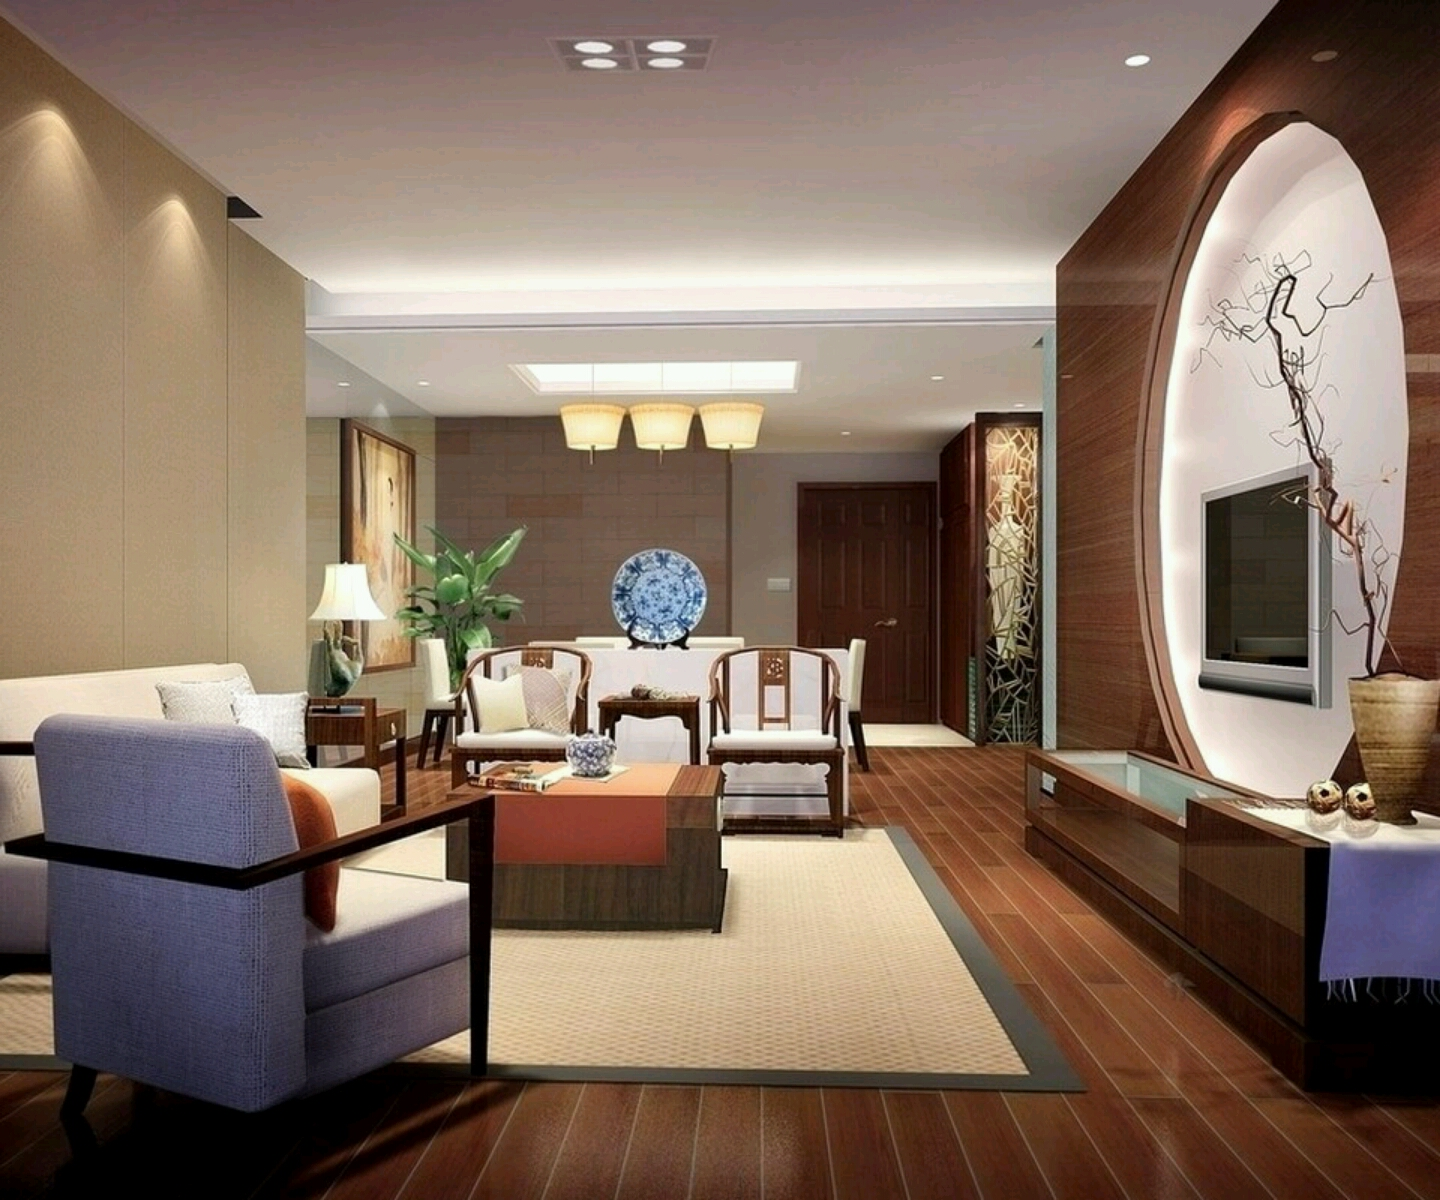 Luxury homes interior decoration living room designs ideas for House living room design